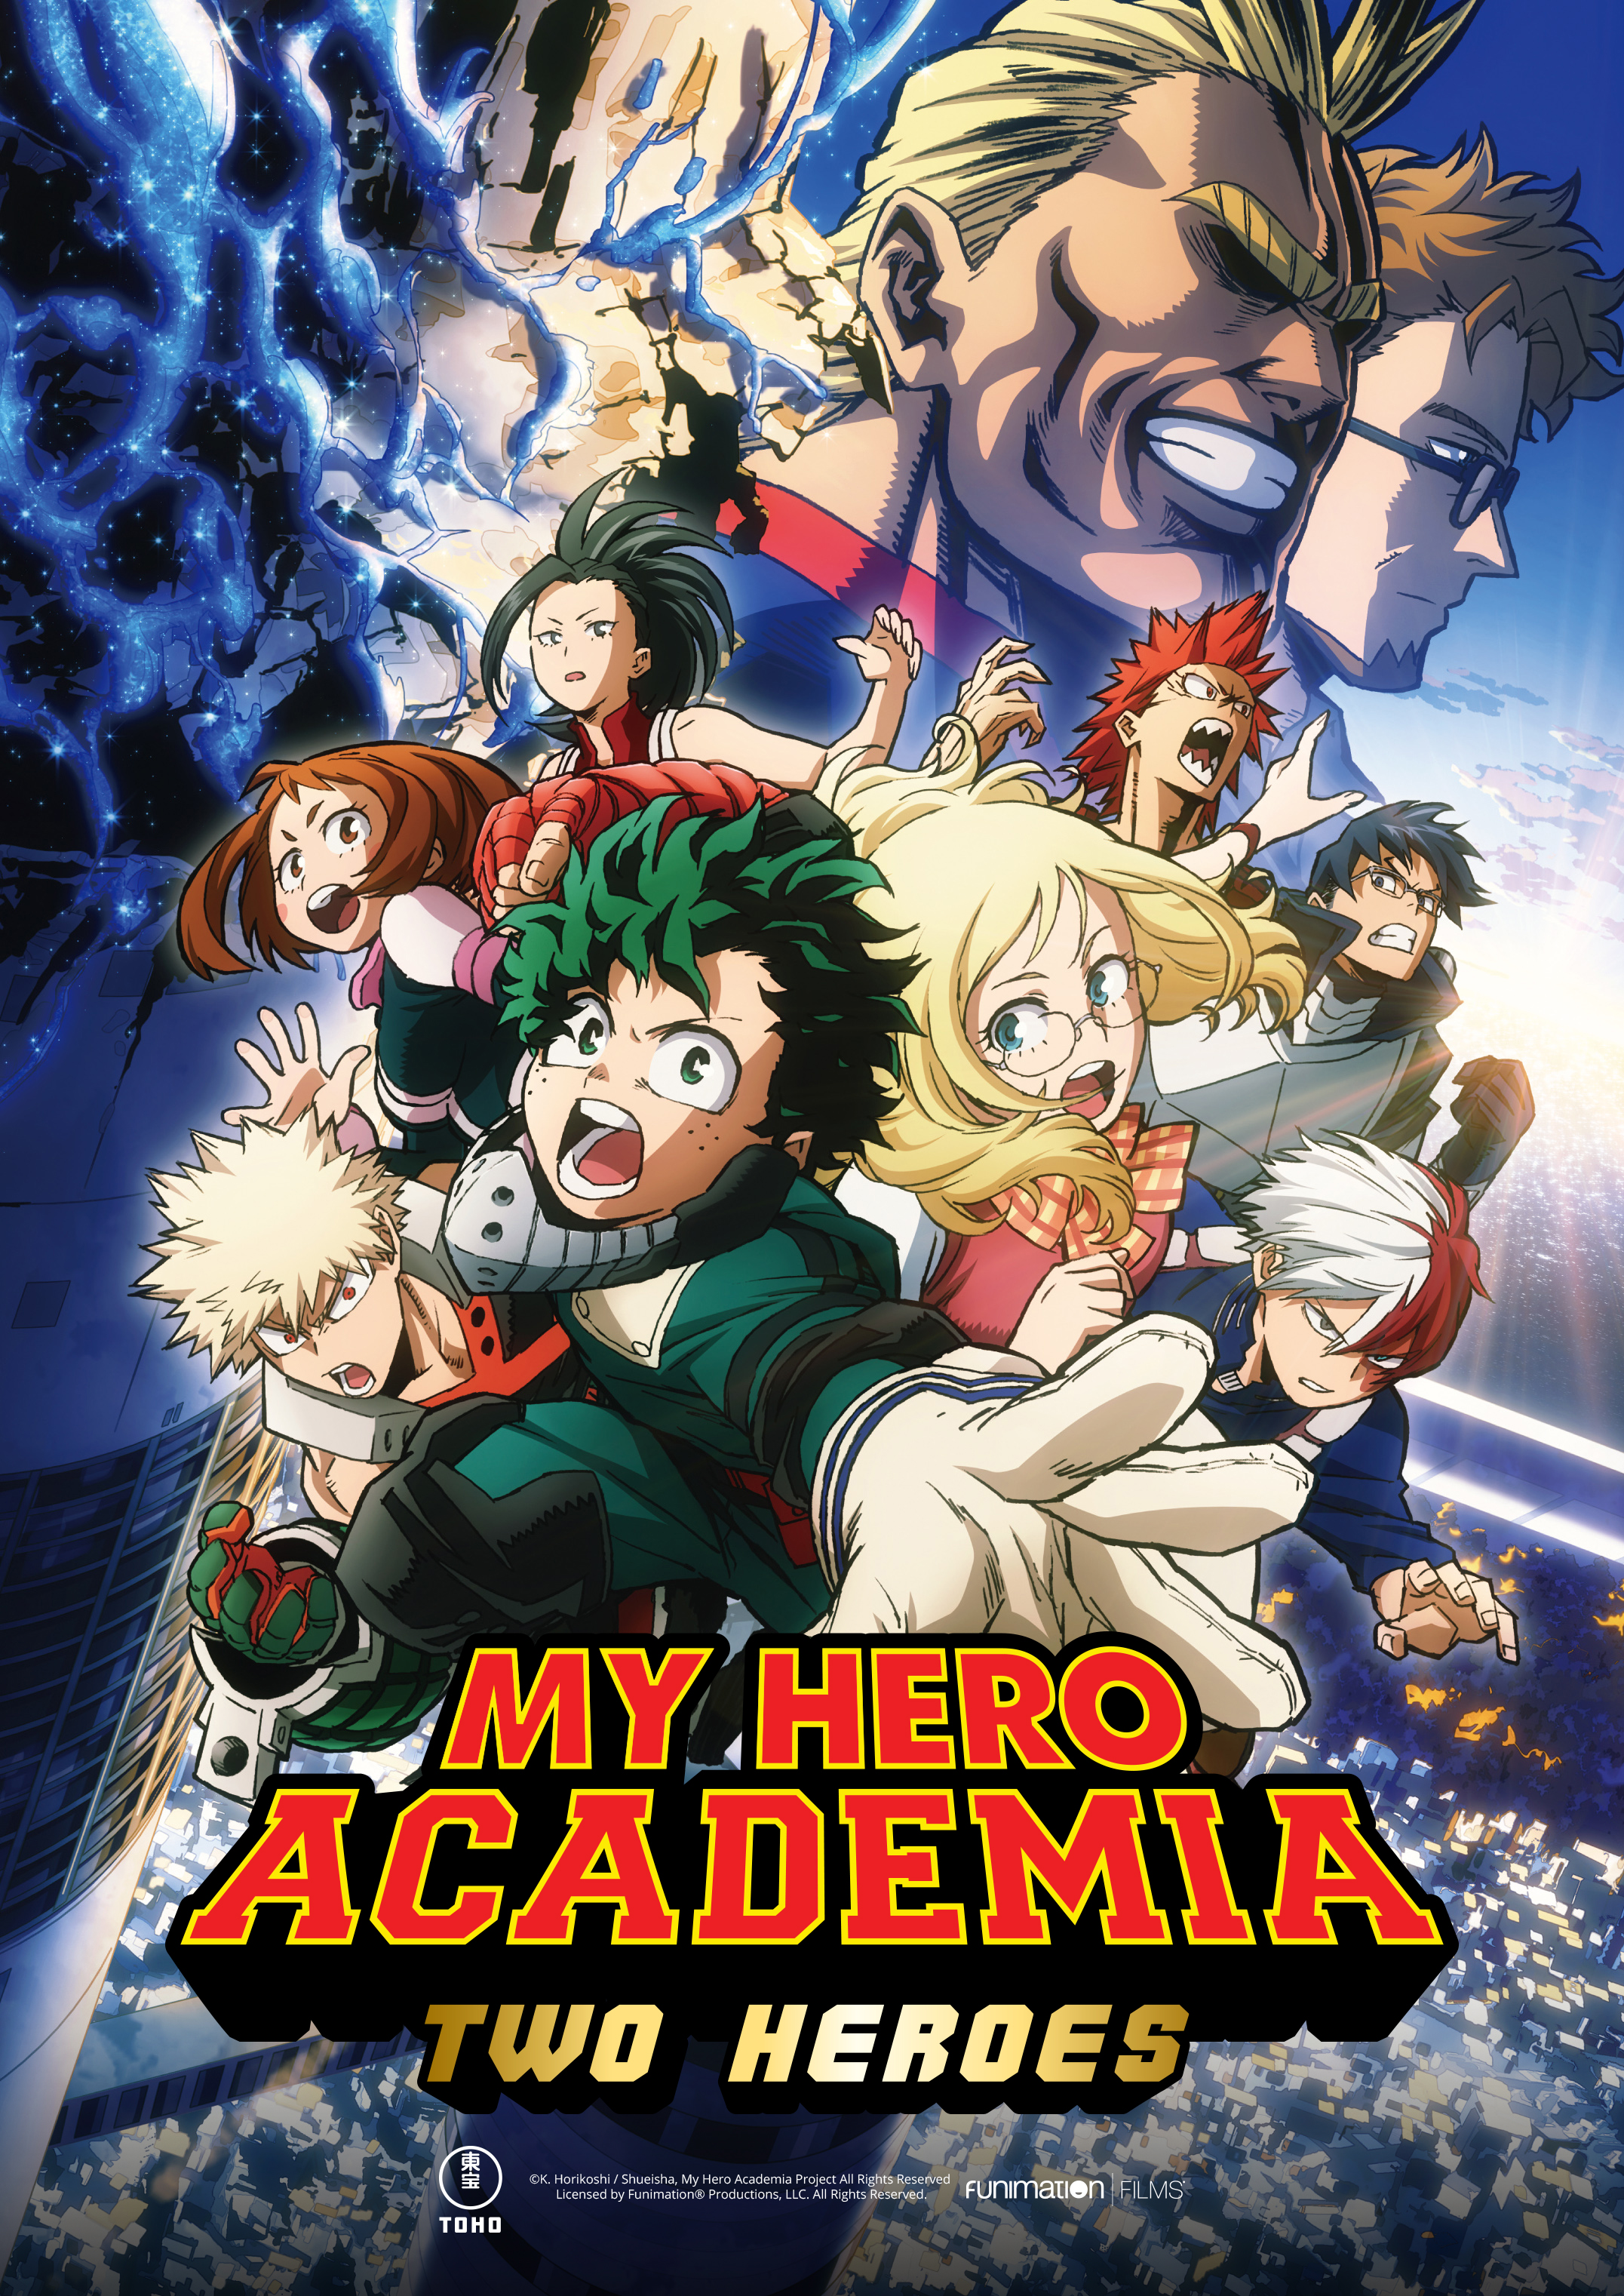 My Hero Academia Archives Funimation Blog